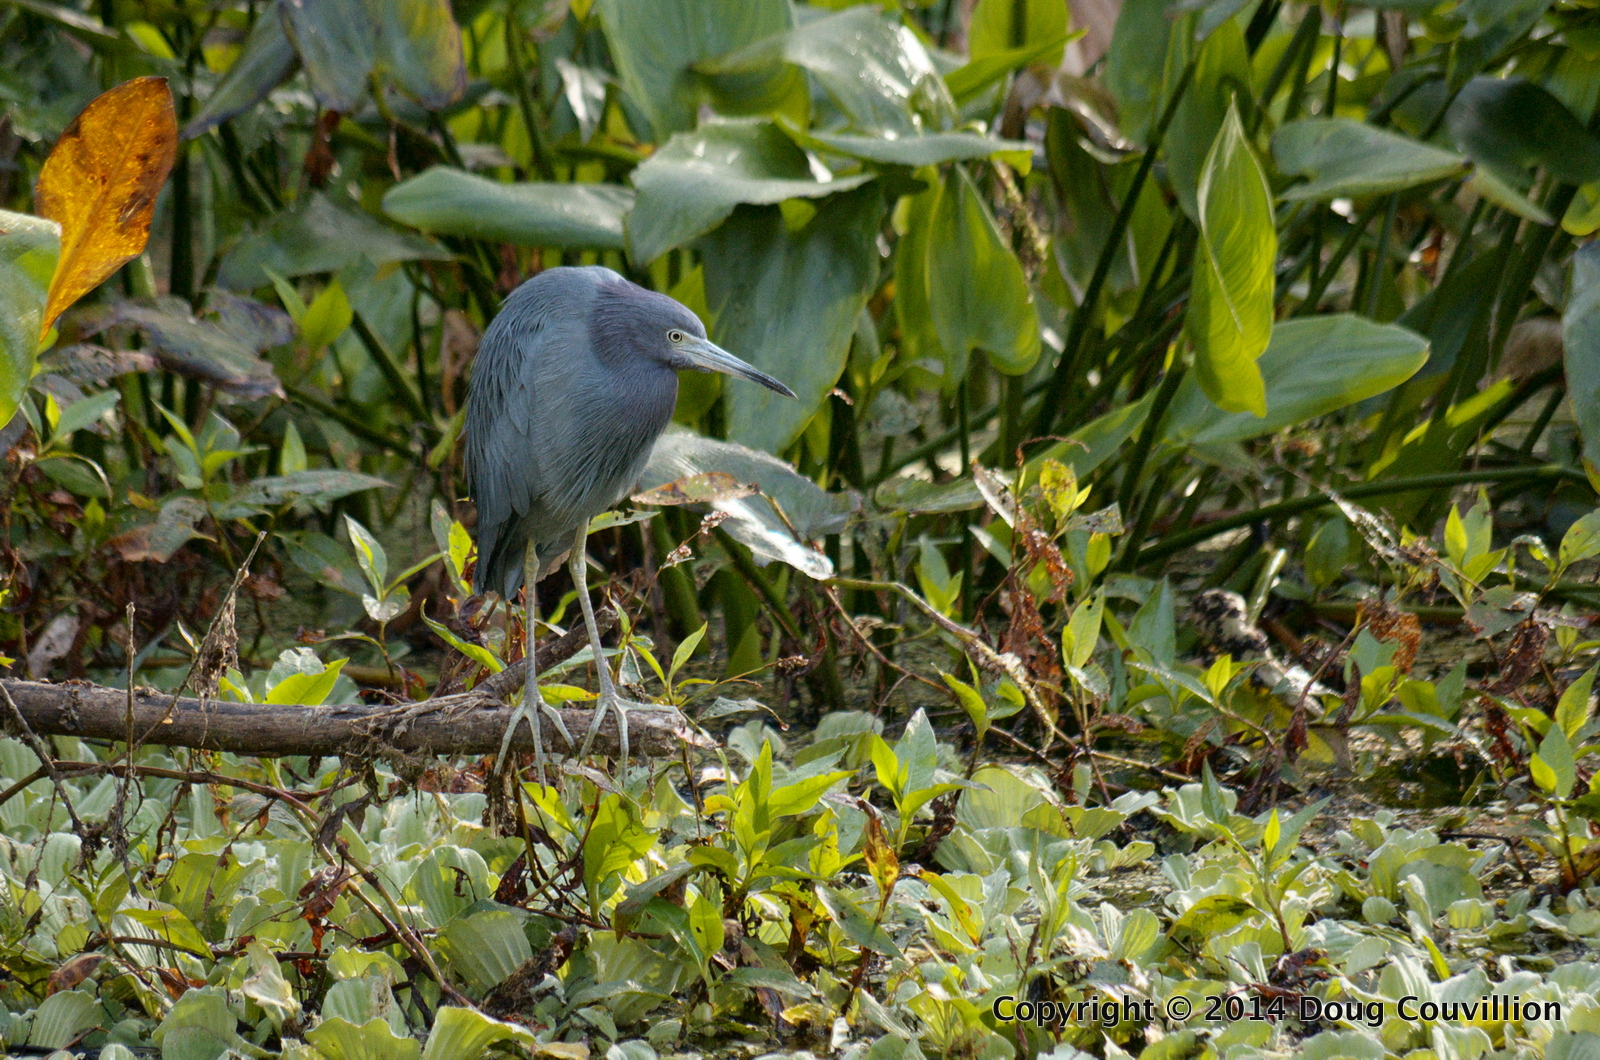 Photograph of a Little Blue Heron at Corkscrew Swamp Sanctuary near Naples, Florida